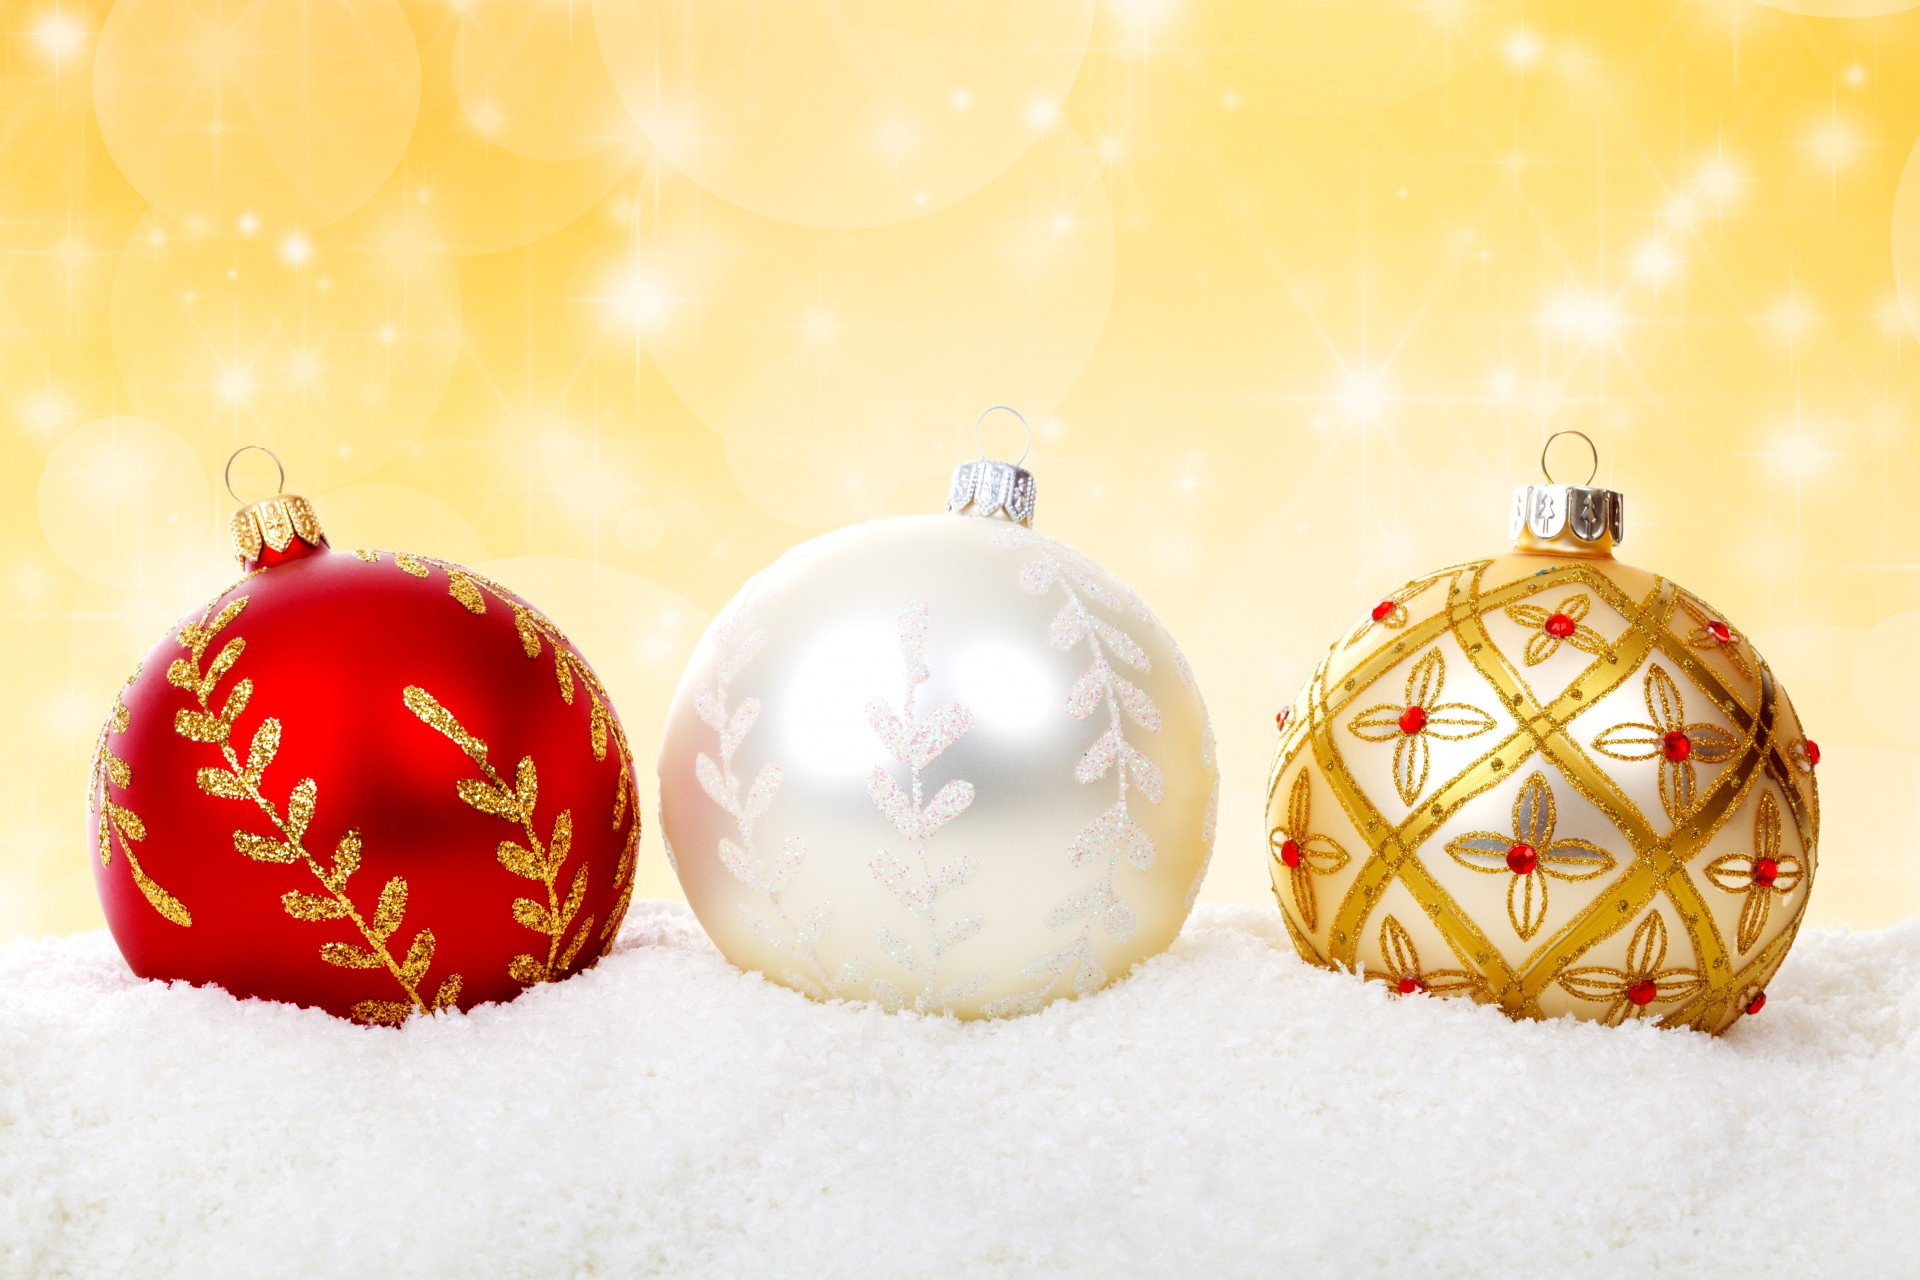 Colorful Christmas Balls Free Stock Photo - Public Domain Pictures